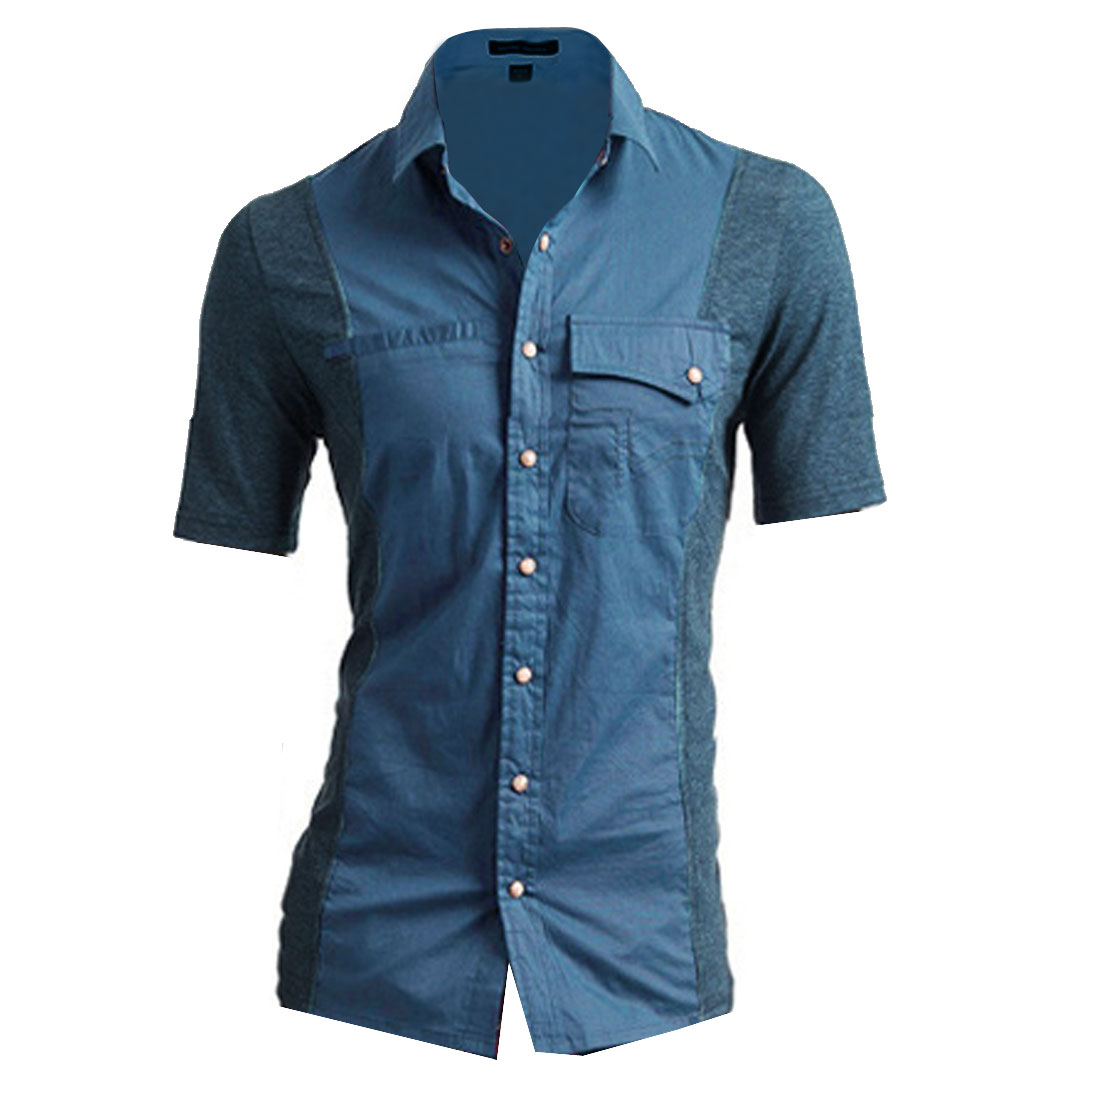 Men Point Collar Front Button Closure Two Chest Pockets Shirt S Blue